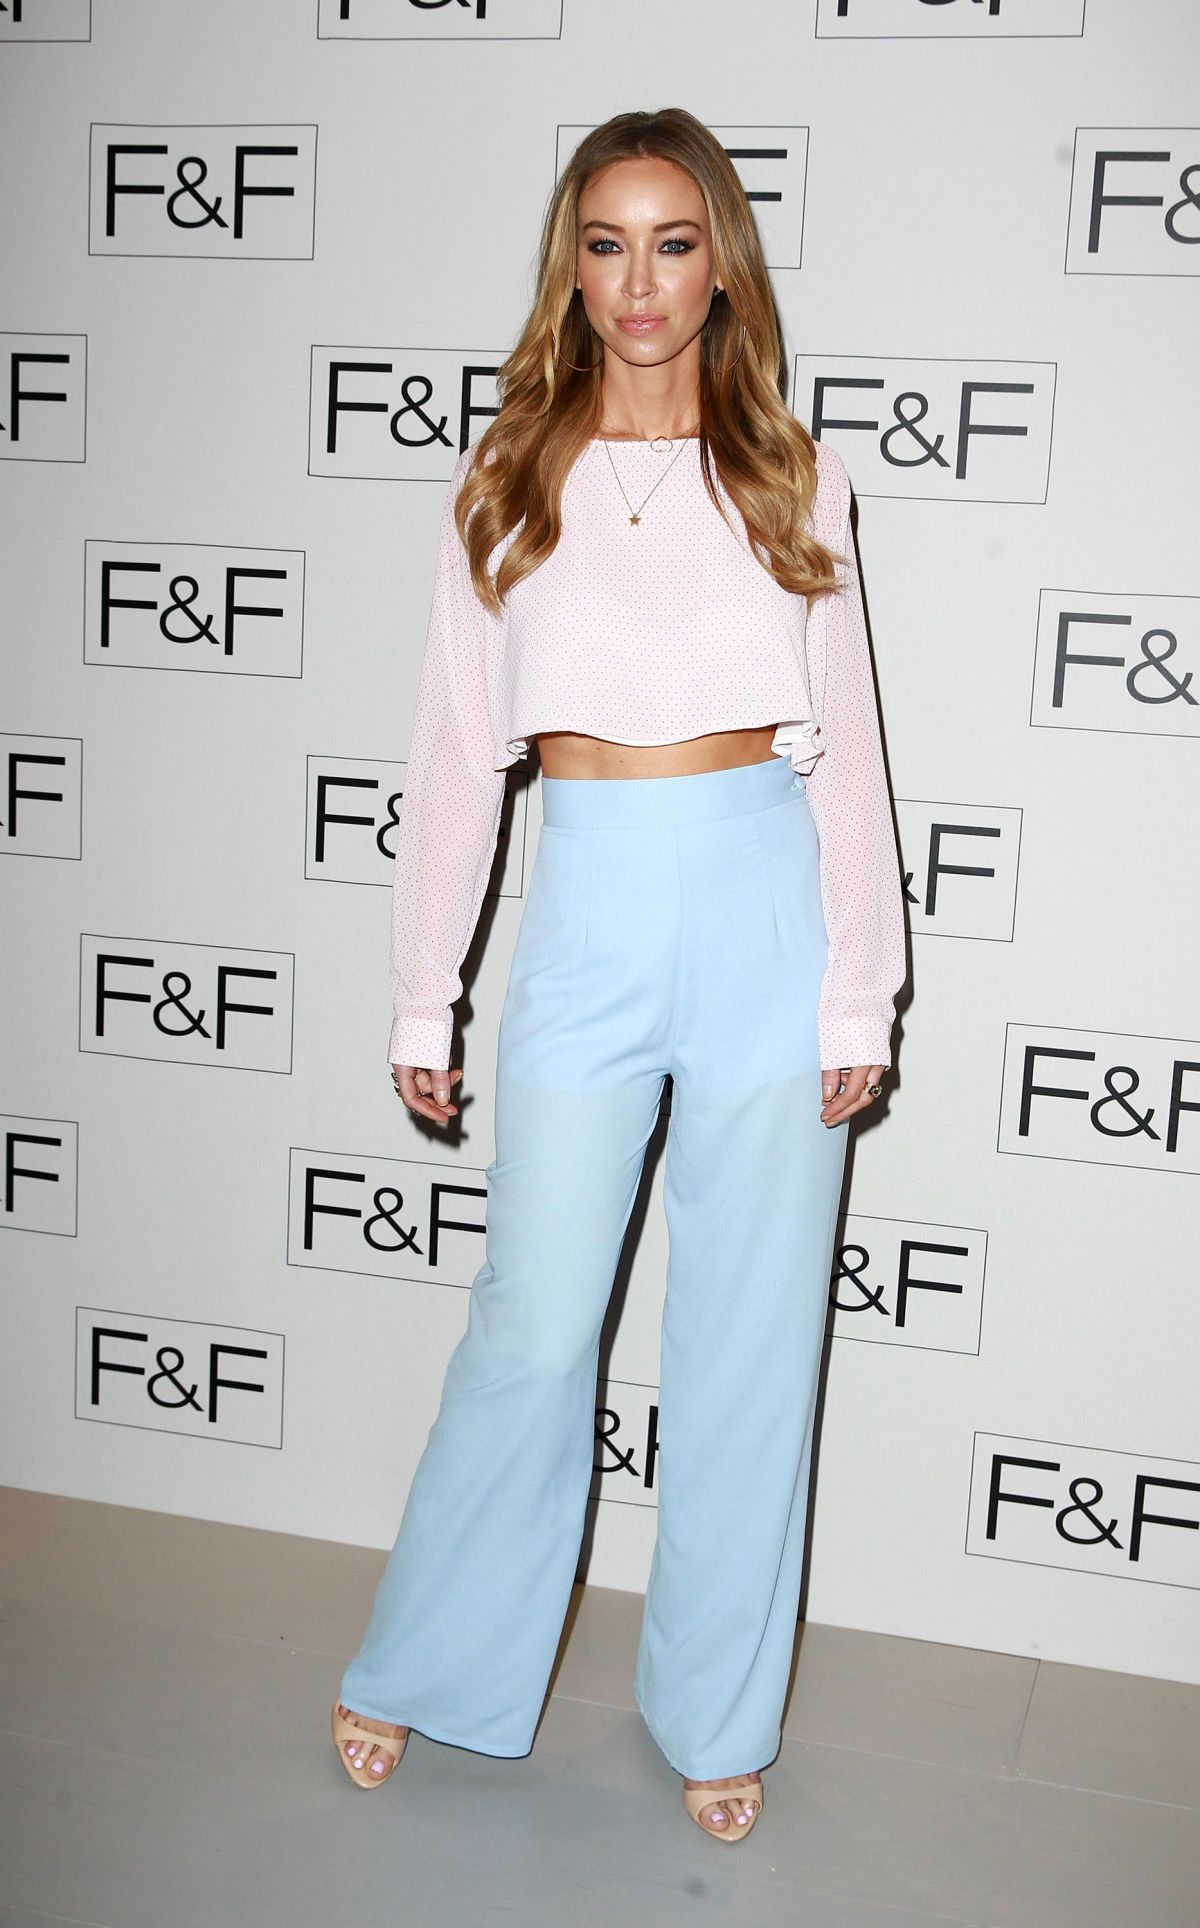 LAUREN POPE at F&F 2014 Fashion Show in London